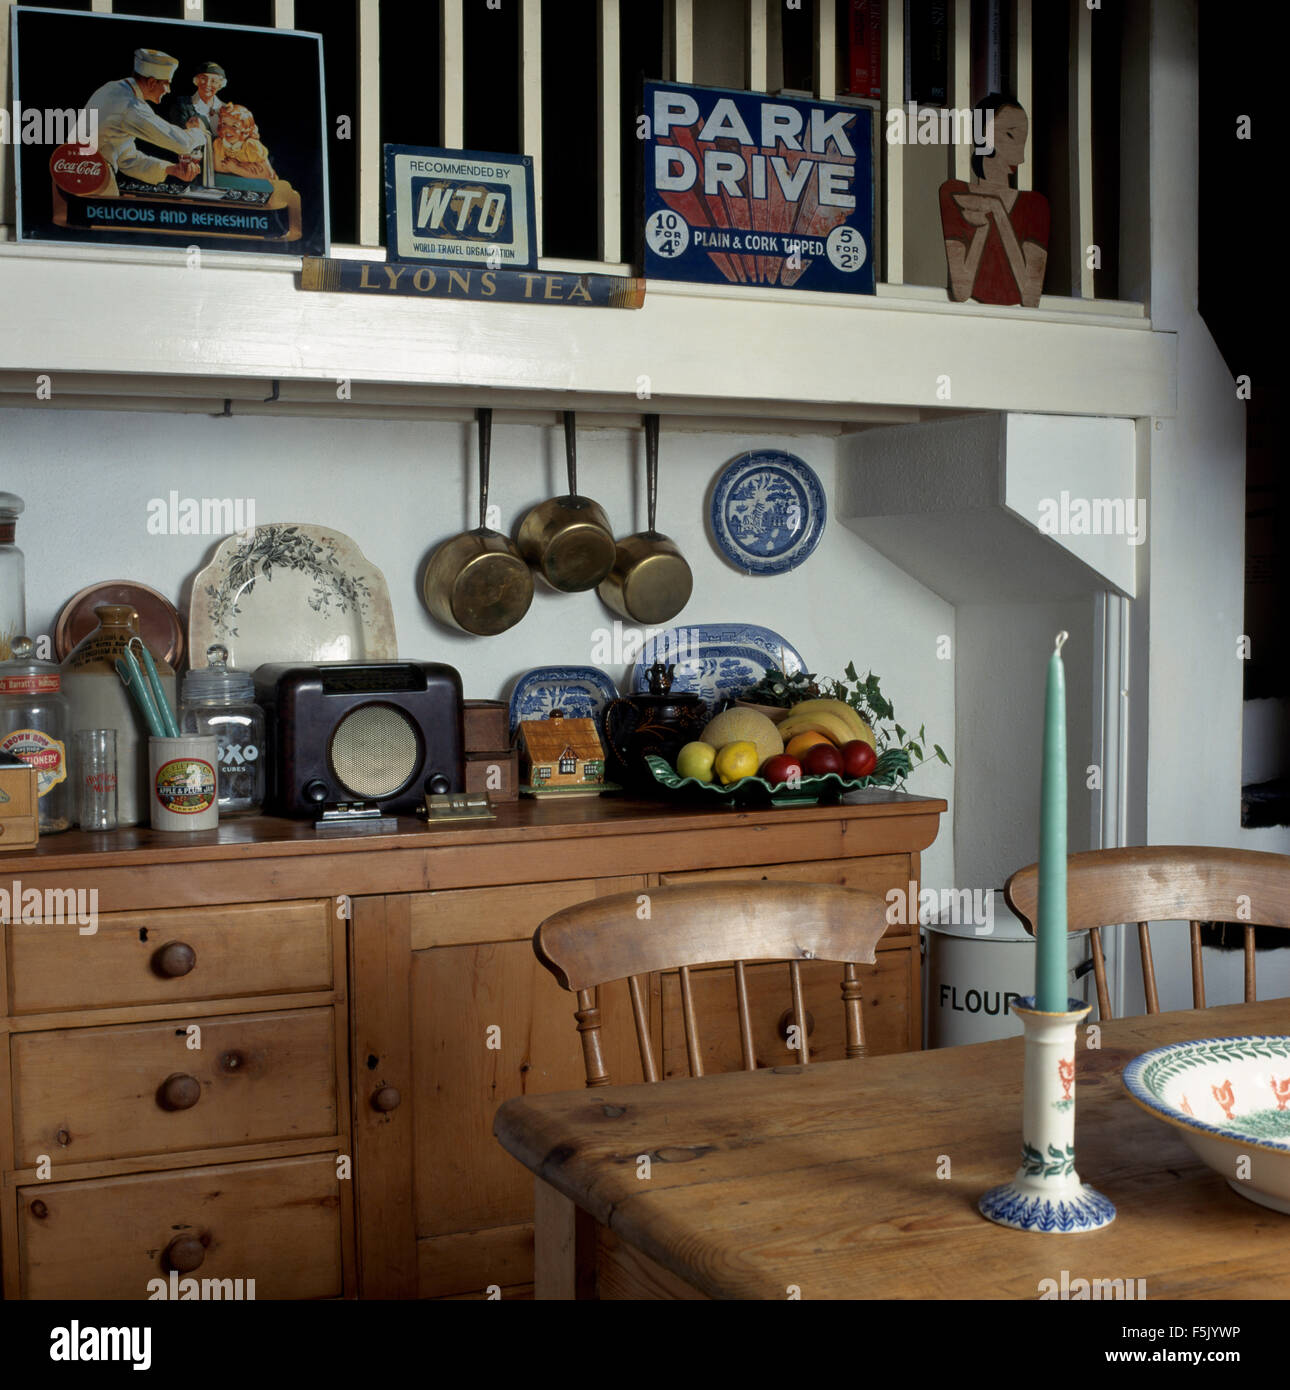 Countertop Signs Vintage Signs And Forties Radio In A Nineties Dining Room With An